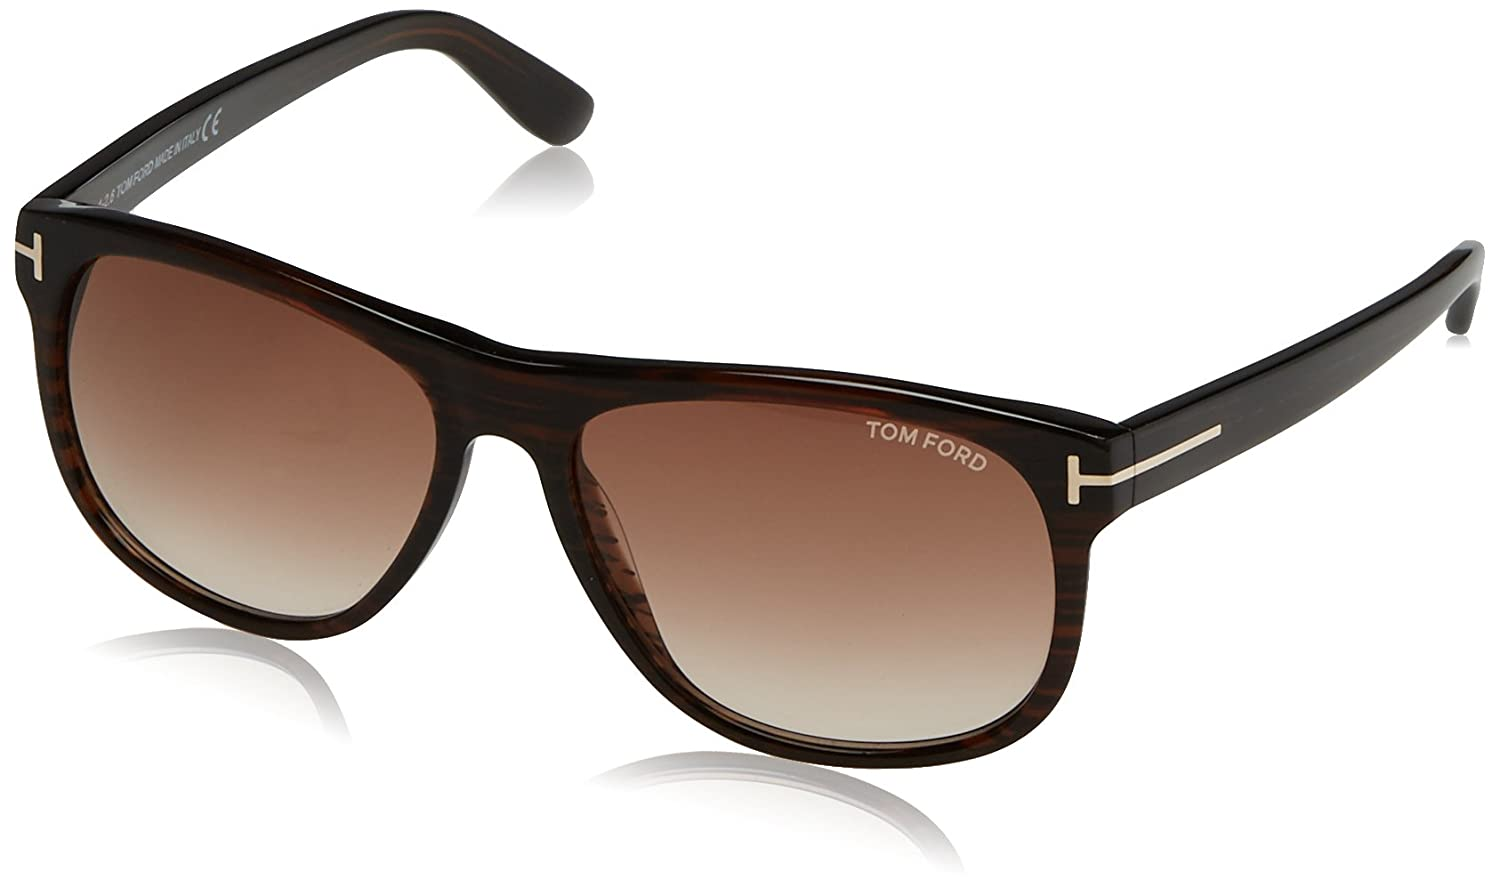 8ef963237d3 Amazon.com  Tom Ford Olivier FT0236 Sunglasses  Shoes